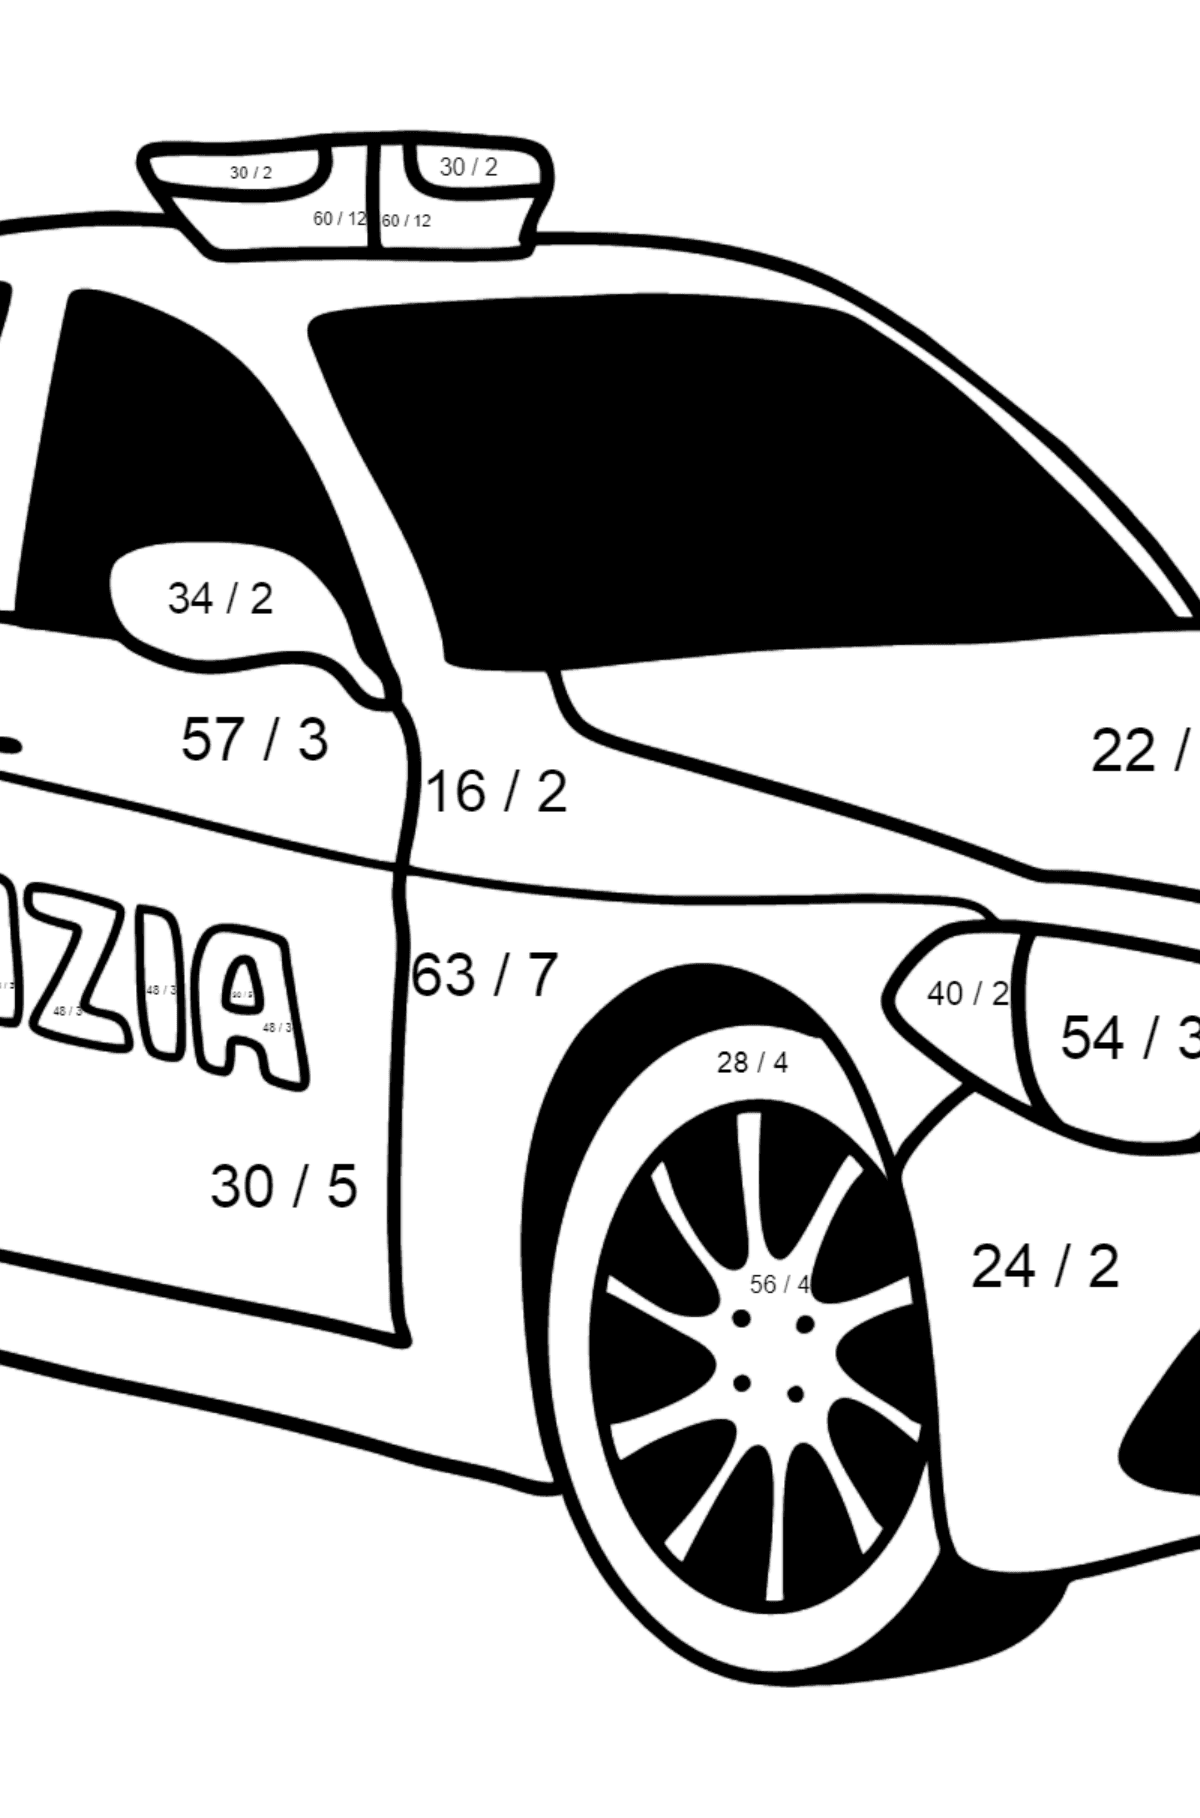 Police Car in Italy coloring page - Math Coloring - Division for Kids